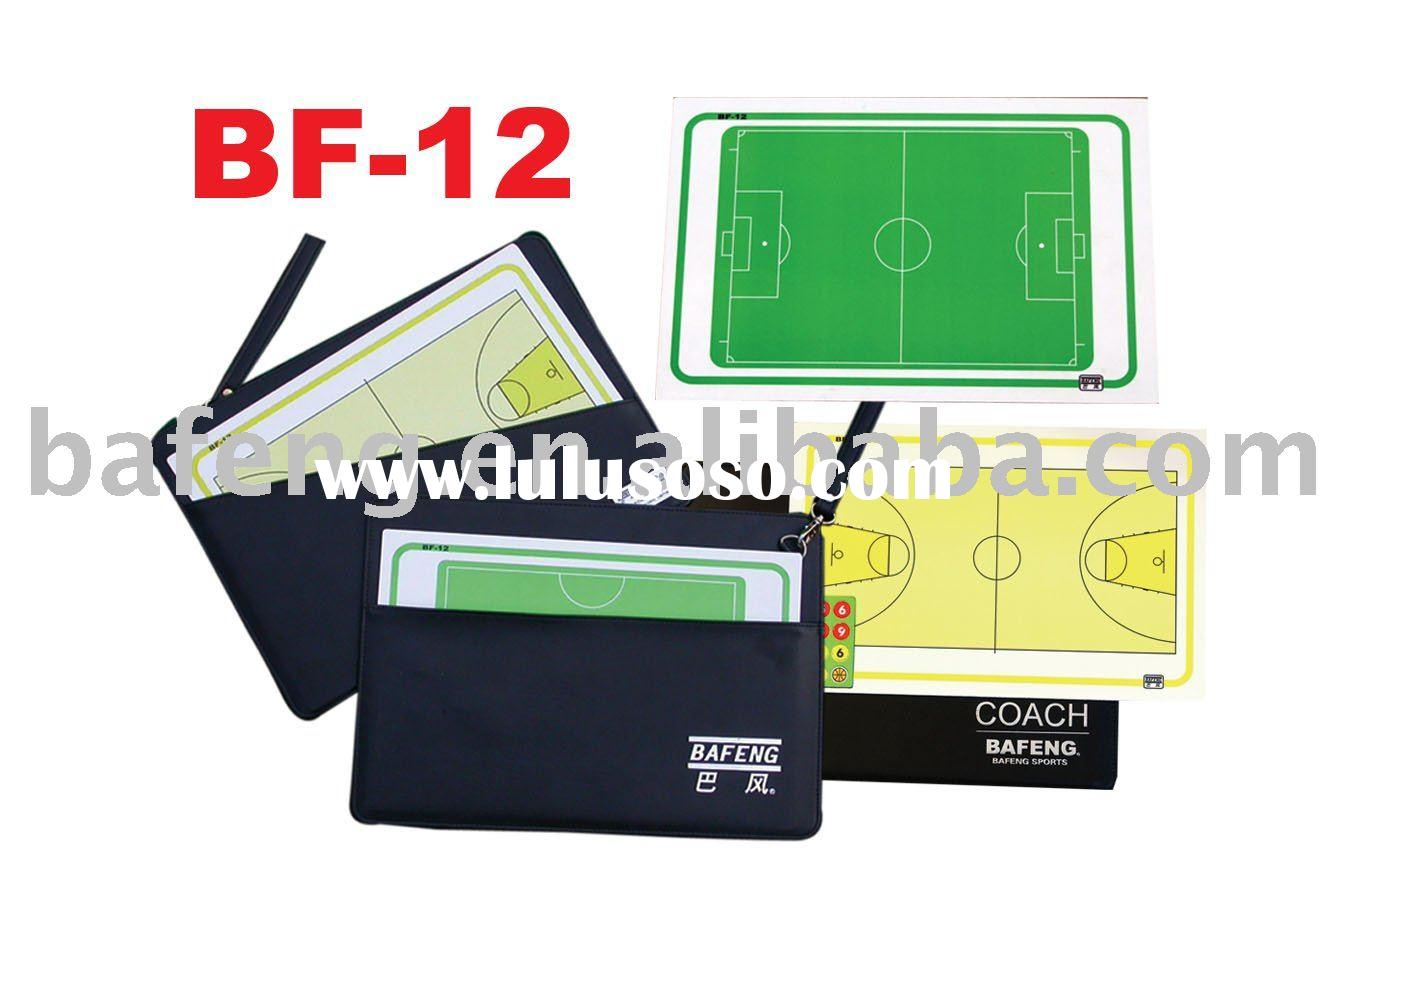 This Magnetic coaching board is a referee equipment for volleyball referee